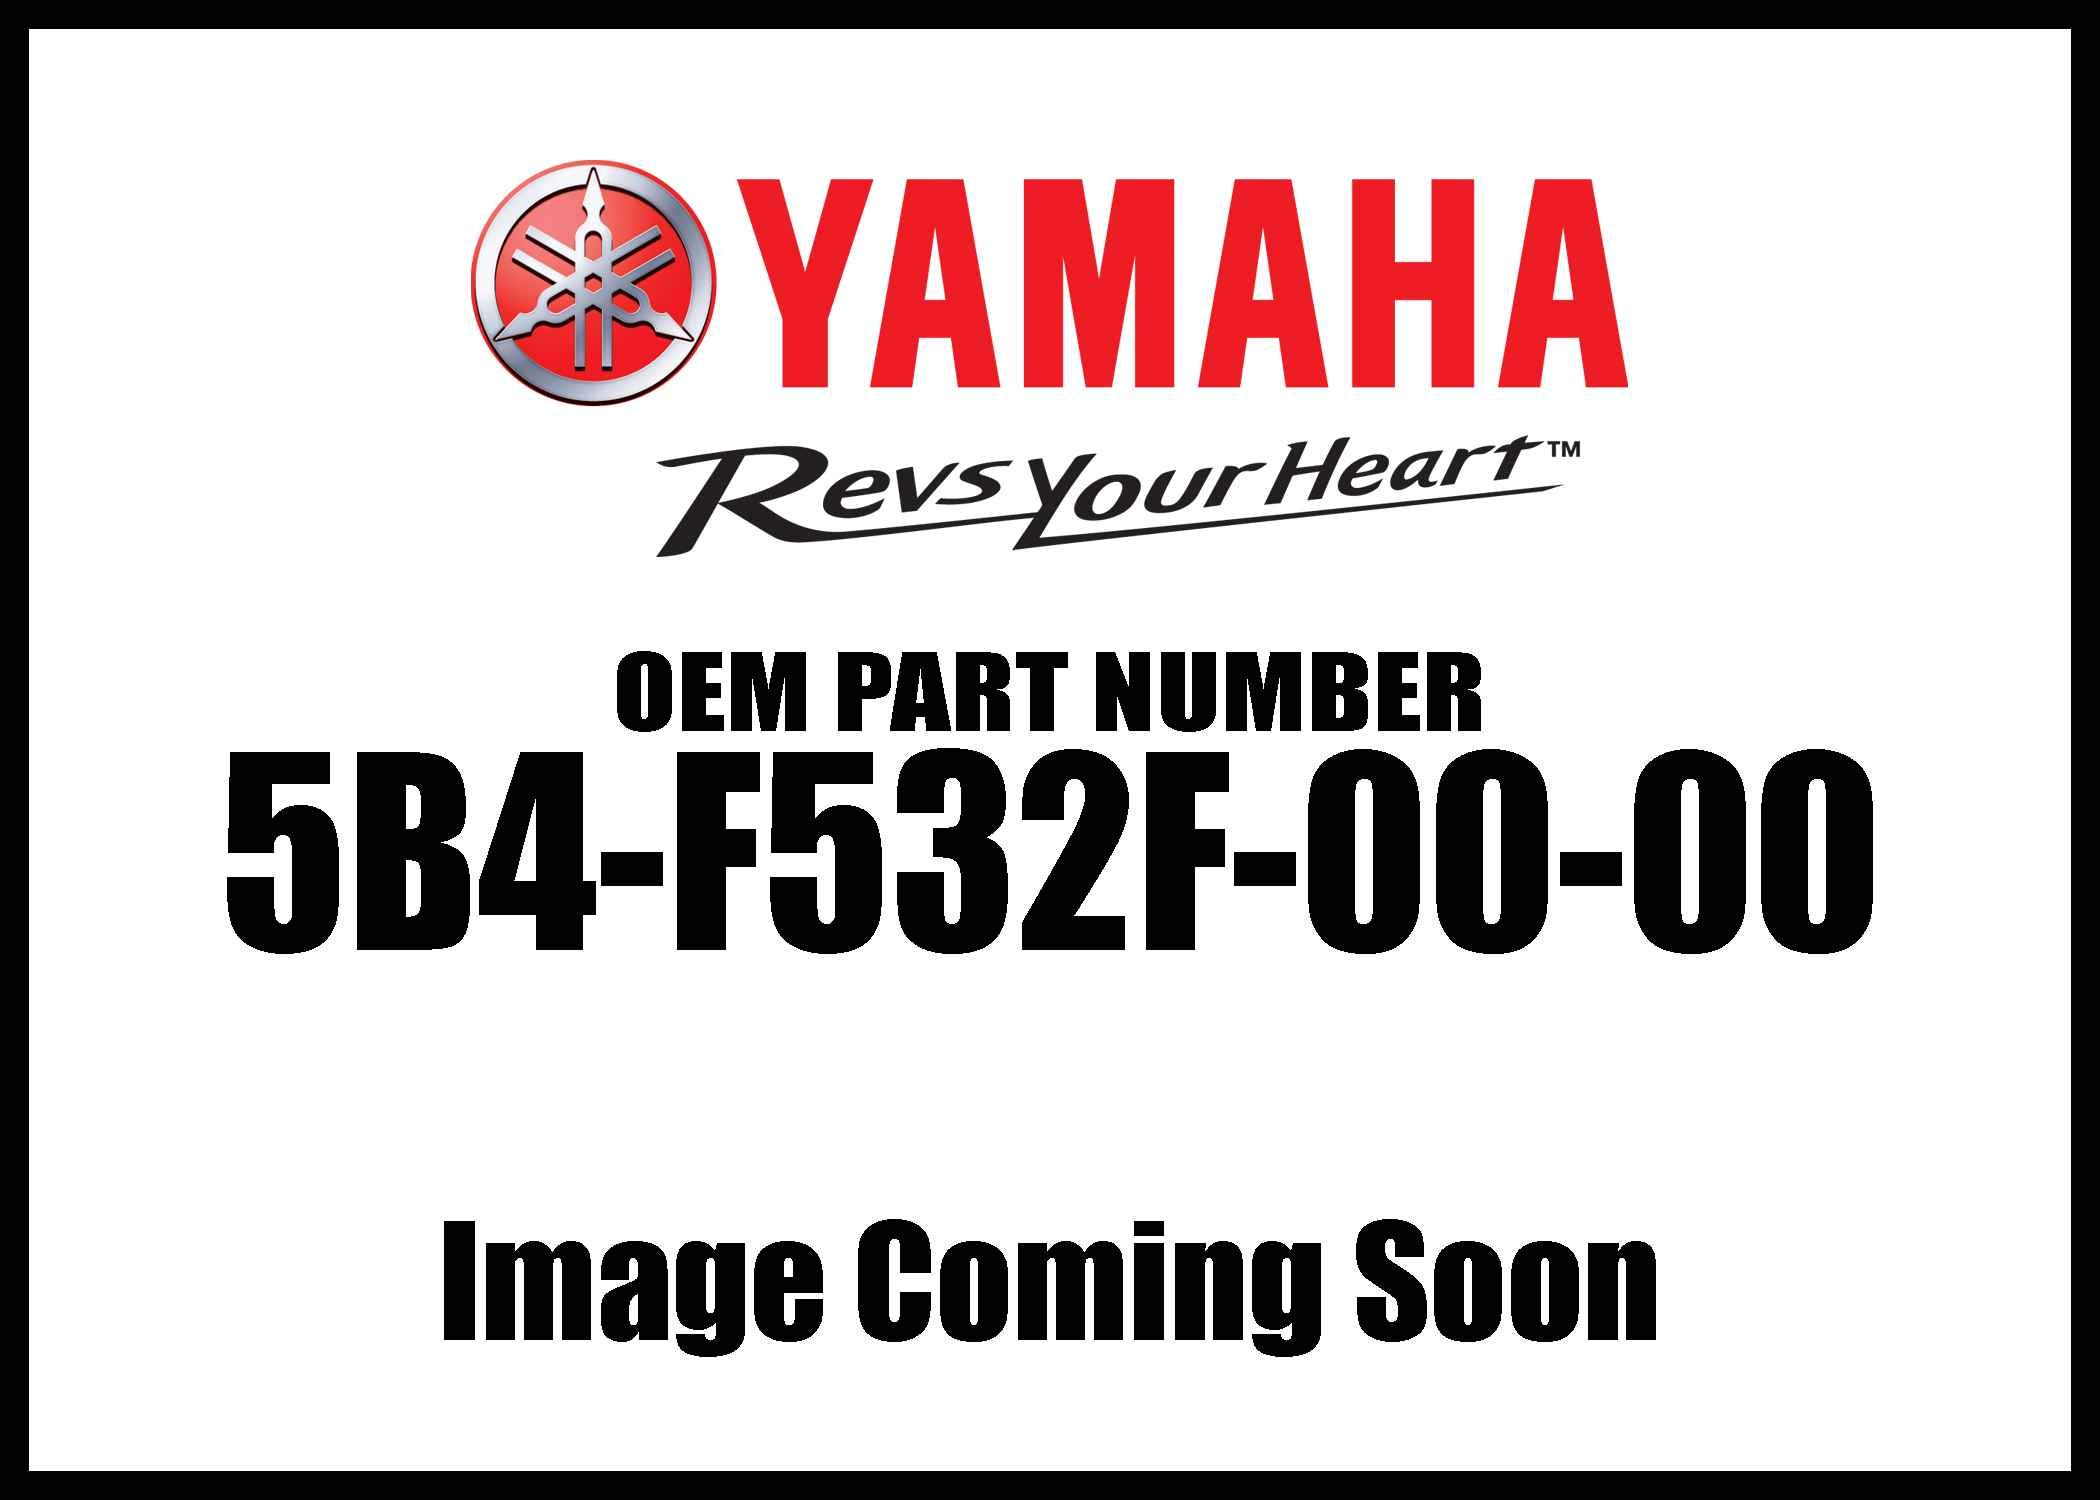 Yamaha 5B4-F532F-00-00 Rear Knuckle Assy Rh; ATV Motorcycle Snow Mobile Scooter Parts